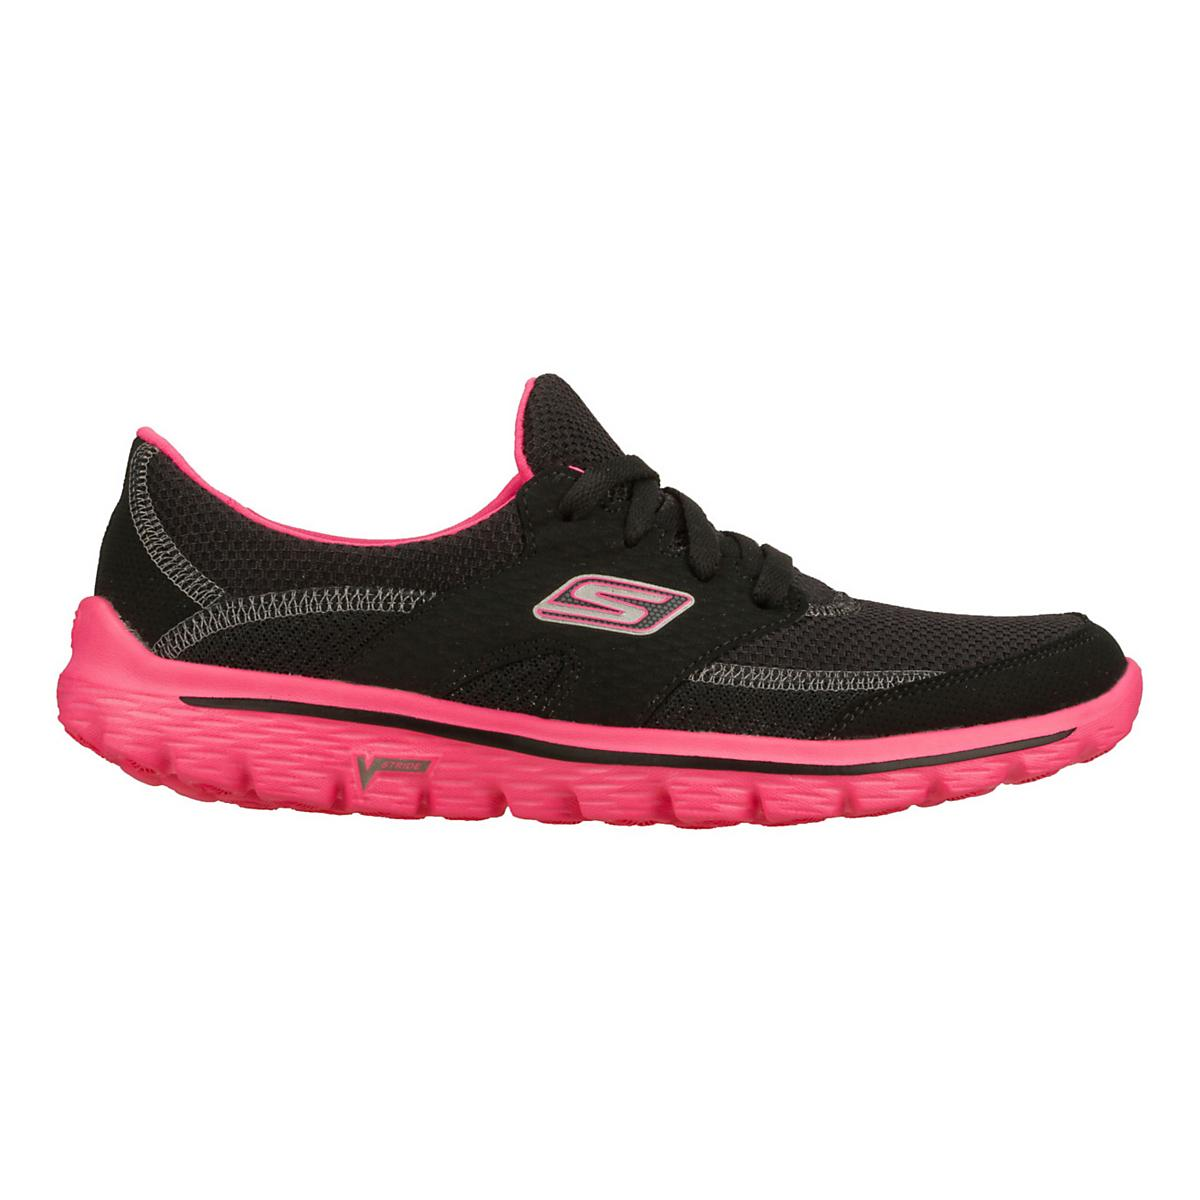 3e03beb8db864f Womens Skechers GO Walk 2 - Stance Walking Shoe at Road Runner Sports